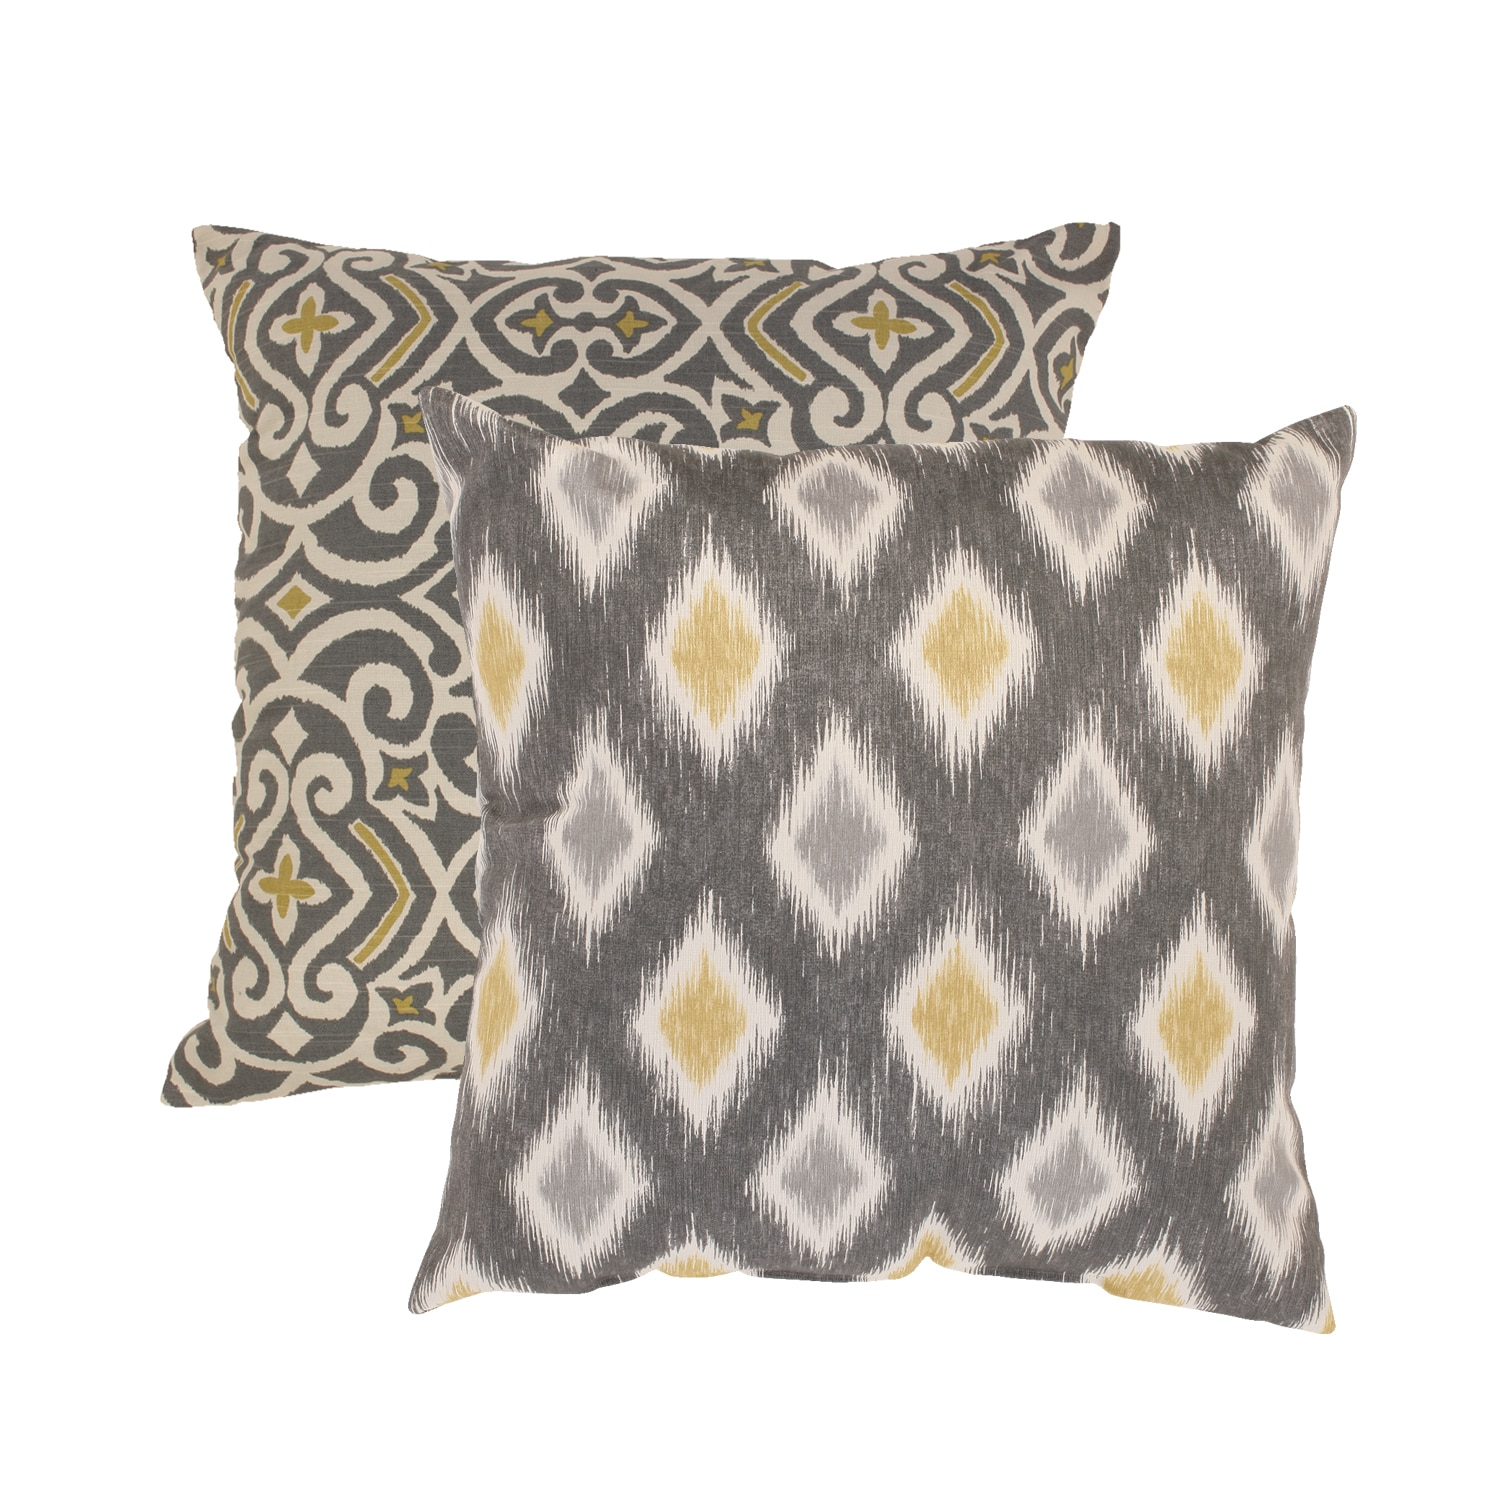 Pillow Perfect Damask and Rodrigo Square Throw Pillows Set of